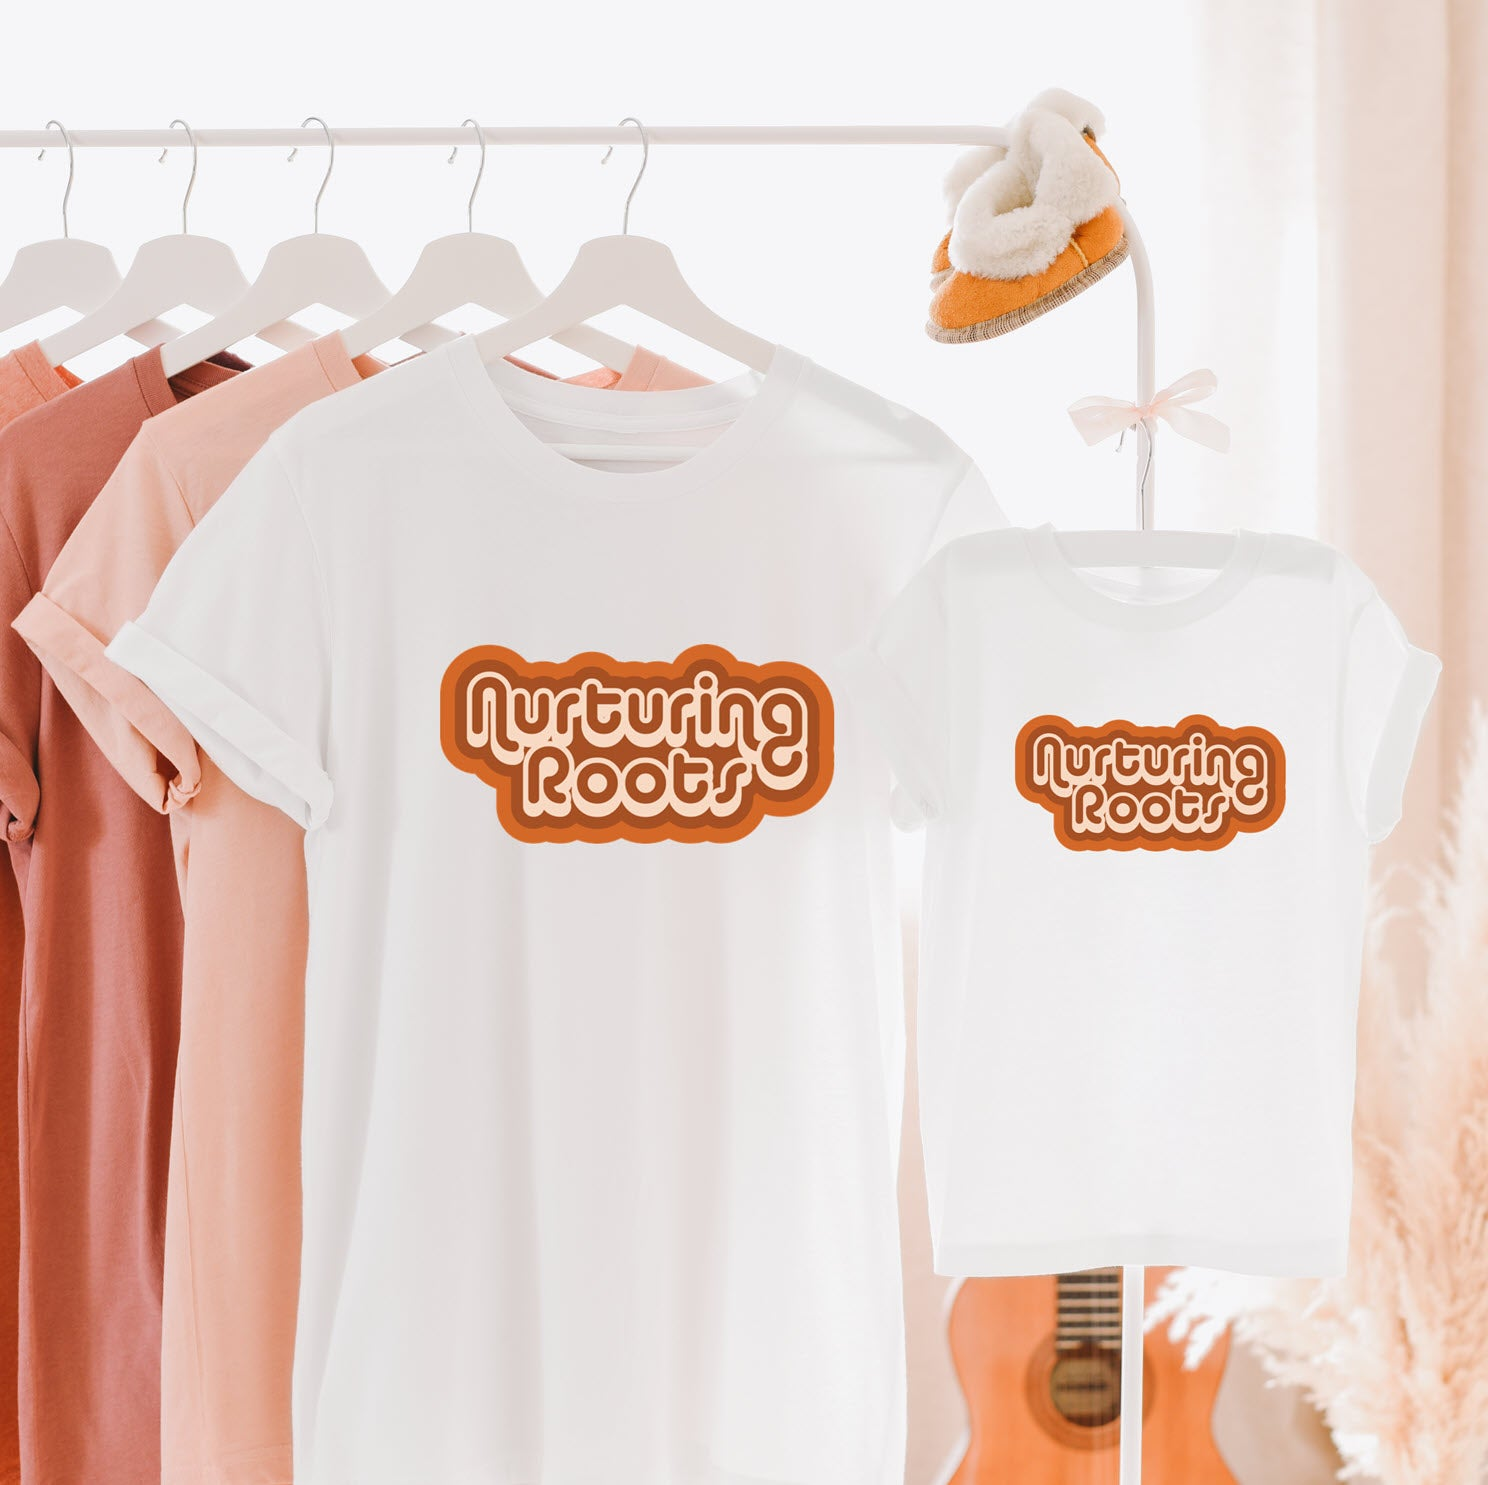 Hang lay of matching mommy and me tee shirts printed with the words nurturing roots in a retro style font